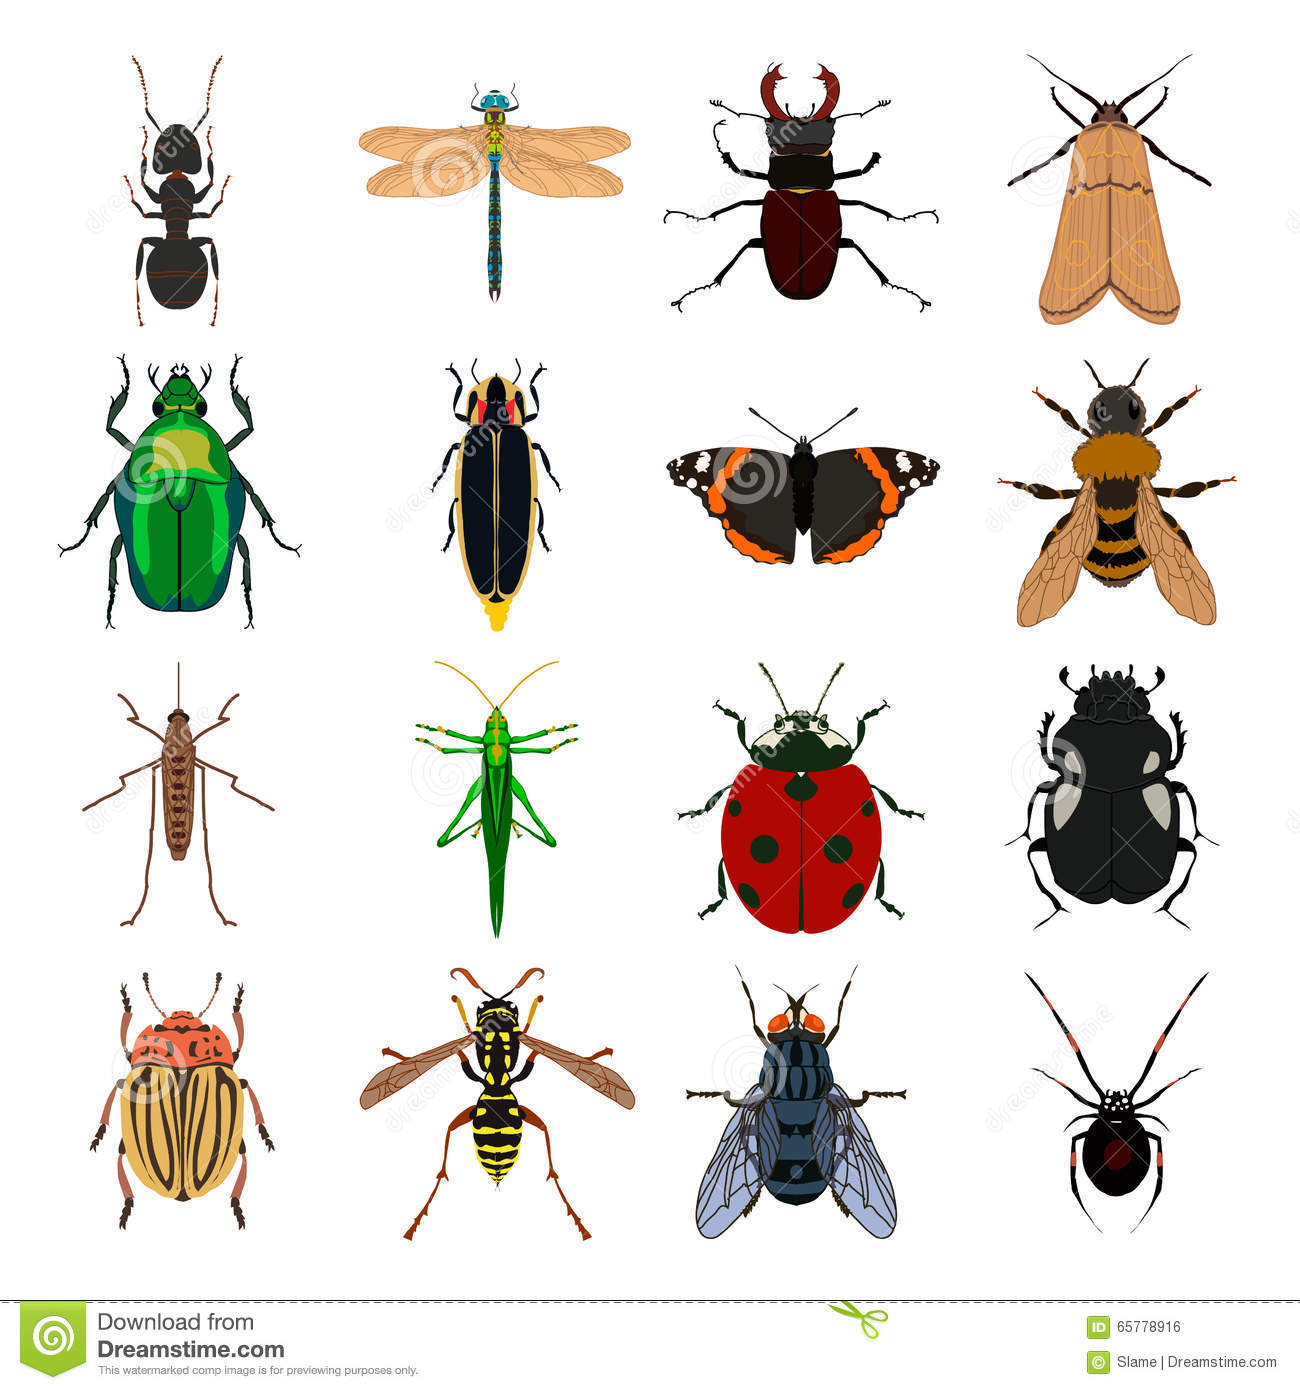 Insects.org